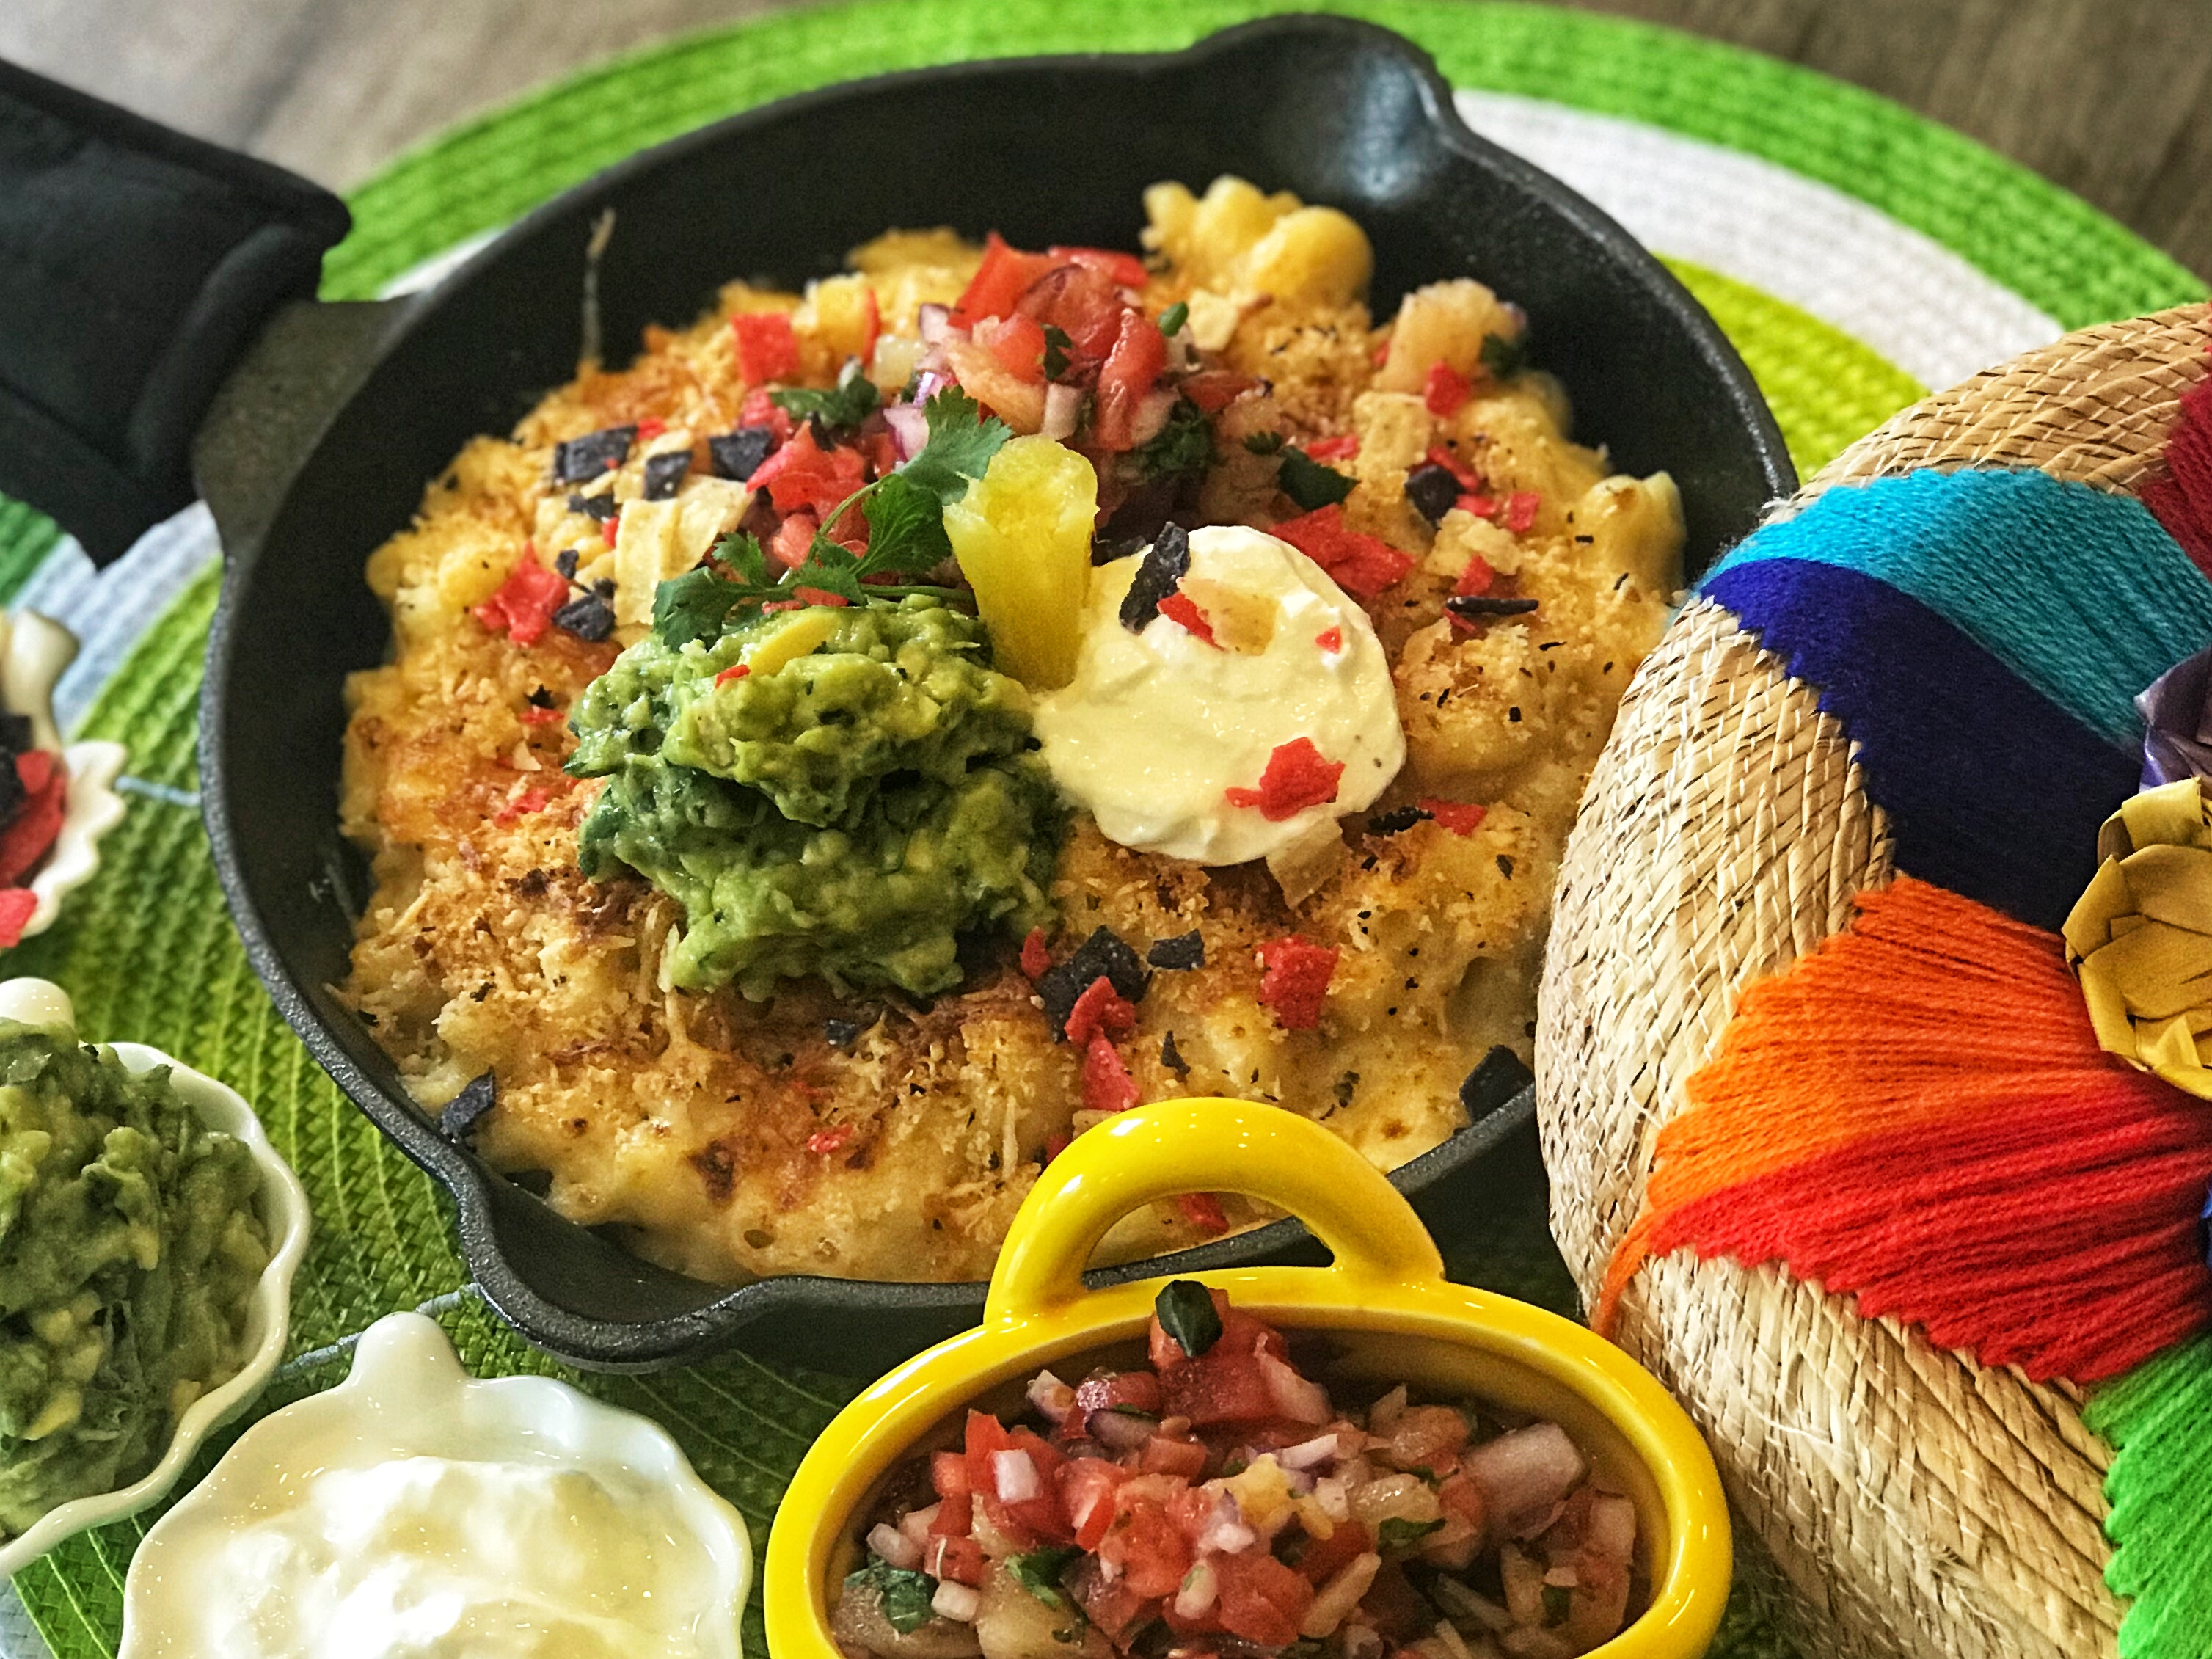 Mac 'n Cheese, the way our family likes it; with a Mexican twist - baked with guacamole, pineapple pico de gallo, sour cream and topped with infused breadcrumbs! The cheese sauce is really just original, made with cheddar and parmesan.